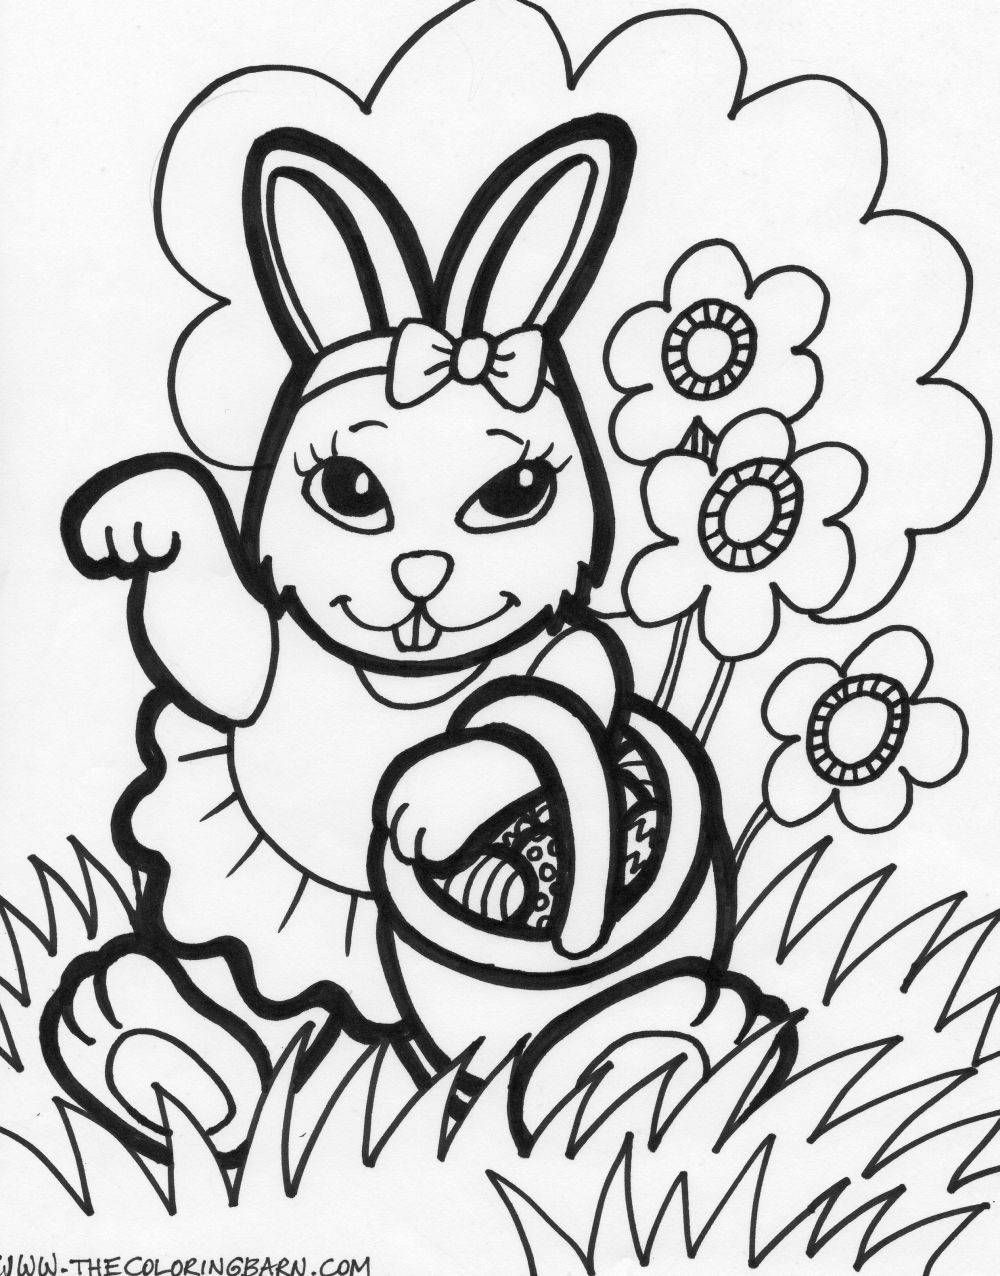 Easter bunny coloring free online printable coloring pages sheets for kids get the latest free easter bunny coloring images favorite coloring pages to